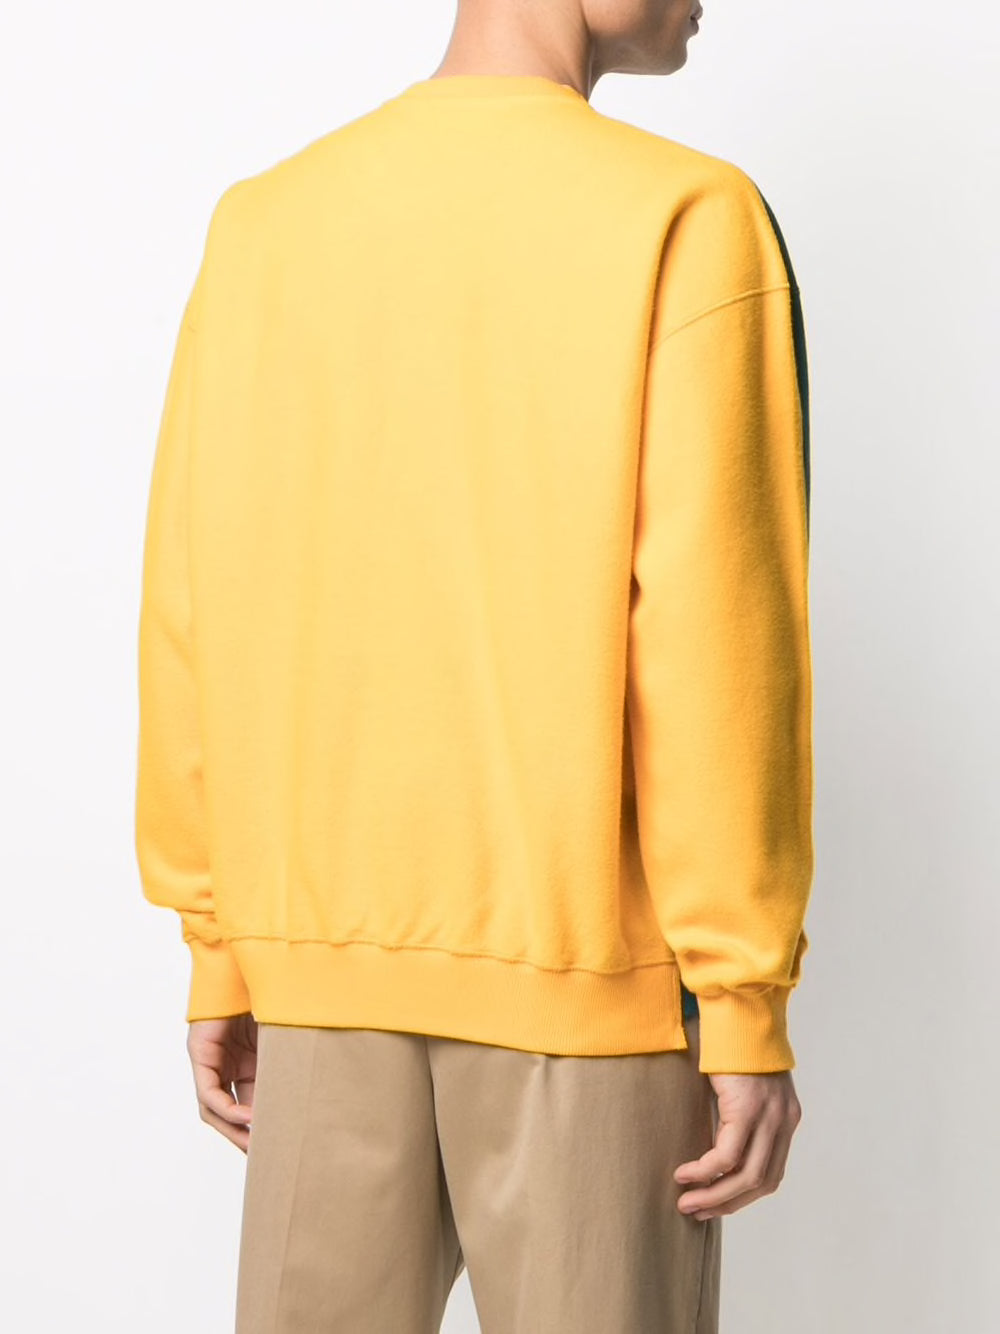 JW ANDERSON UNISEX DECONSTRUCTED FLEECE BACK SWEATSHIRT